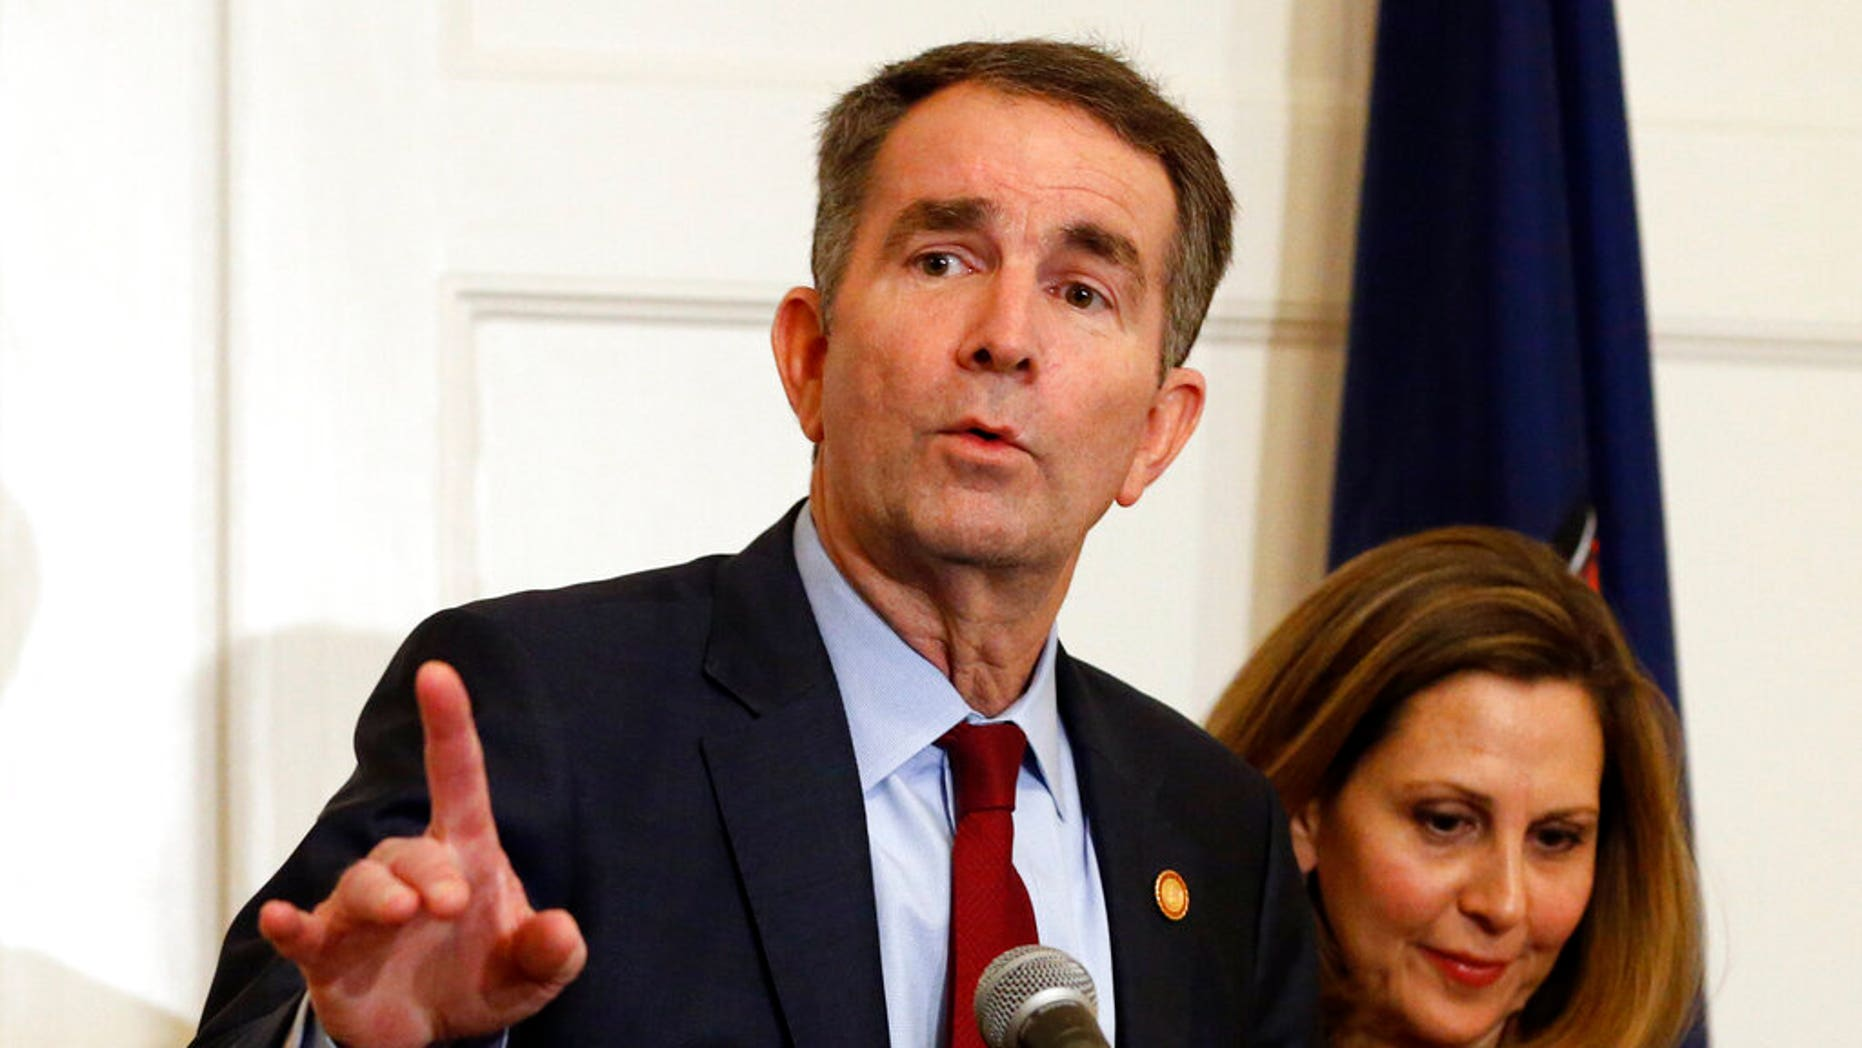 Pam Northarm, right, appears alongside her husband, Virginia Gov. Ralph Northam, during a news conference earlier this month. (AP Photo/Steve Helber)